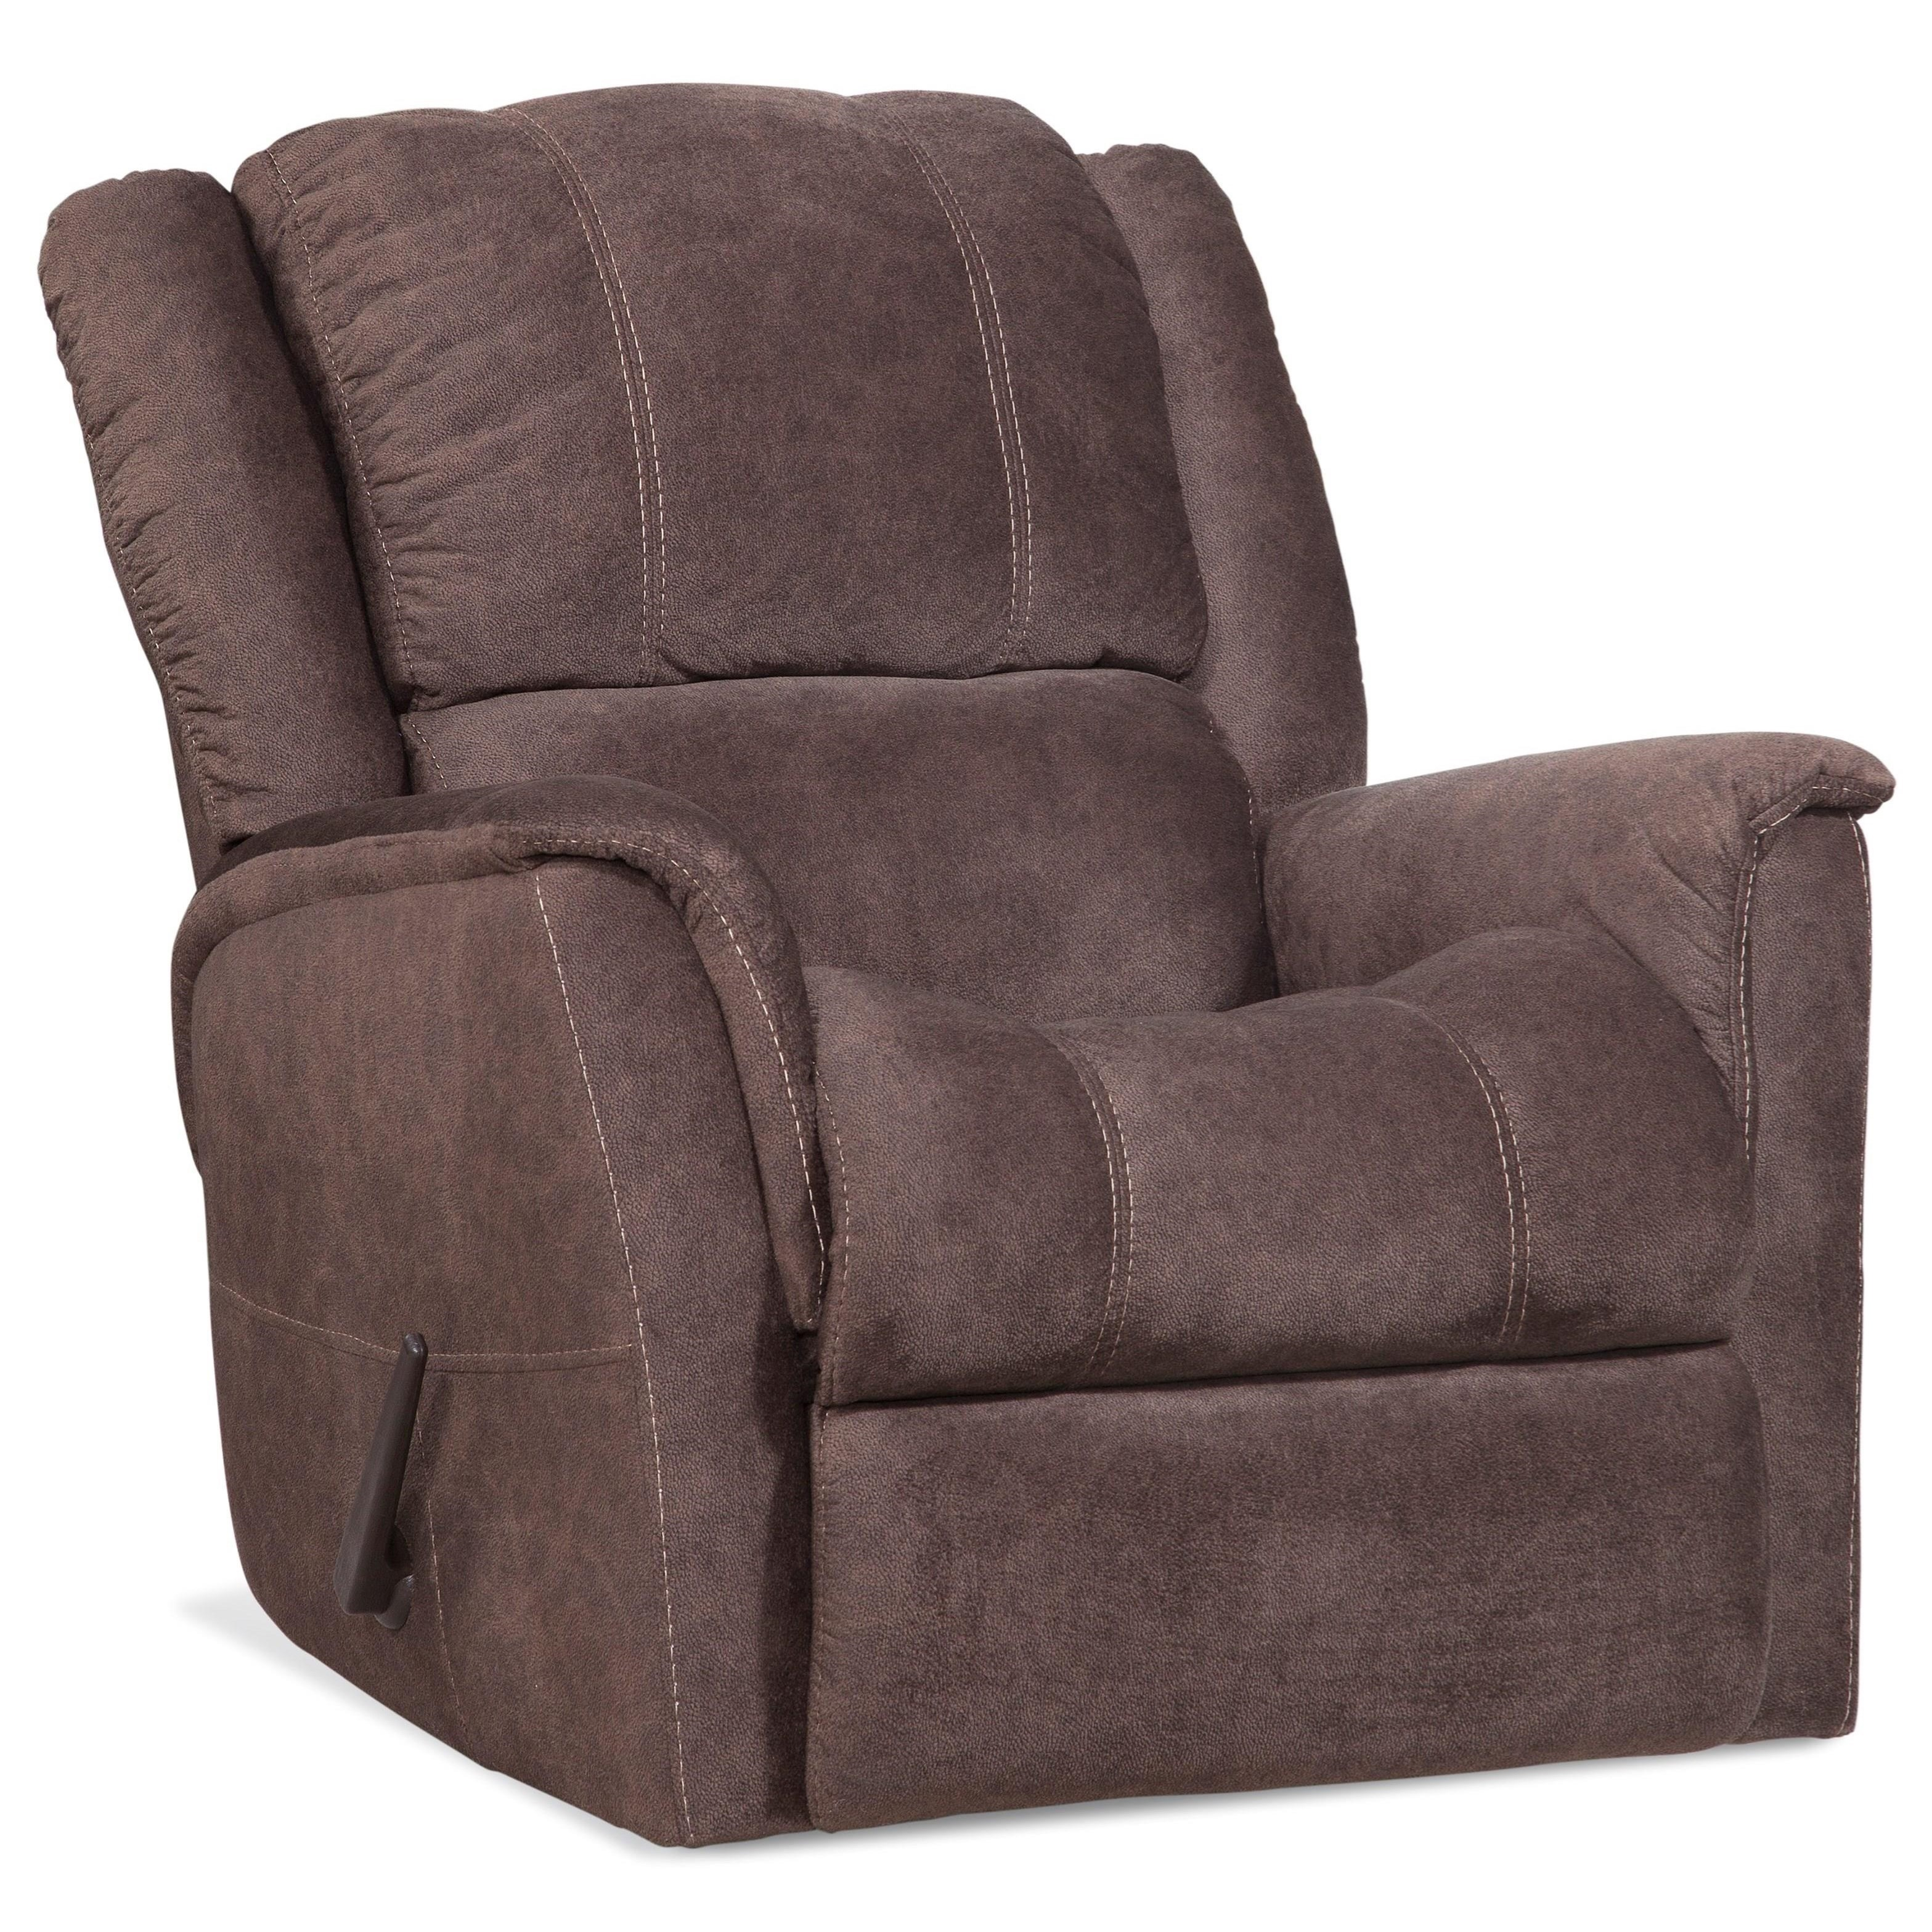 172 Casual Rocker Recliner by HomeStretch at Van Hill Furniture